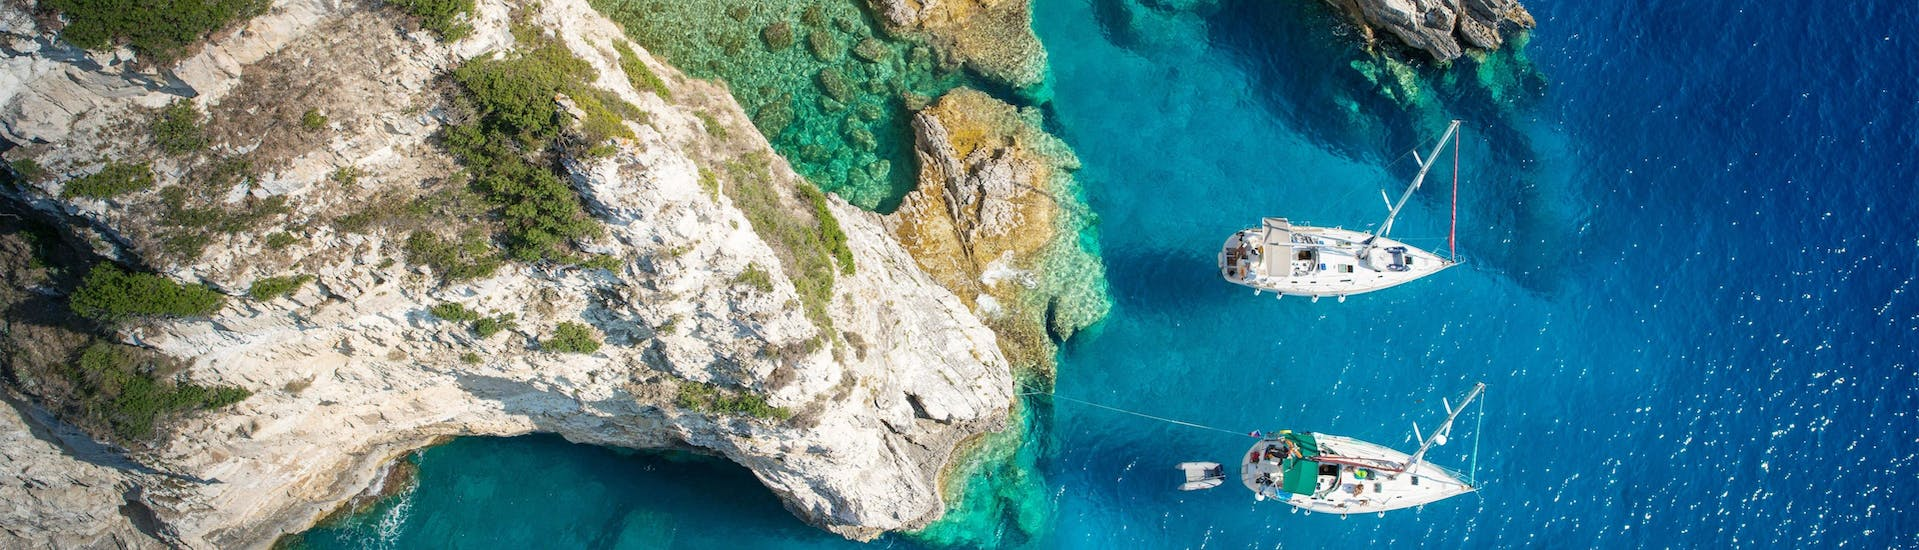 Aerial view of a cove on the island of Paxos where boats are moored, a population destination in Greece for boat trips.